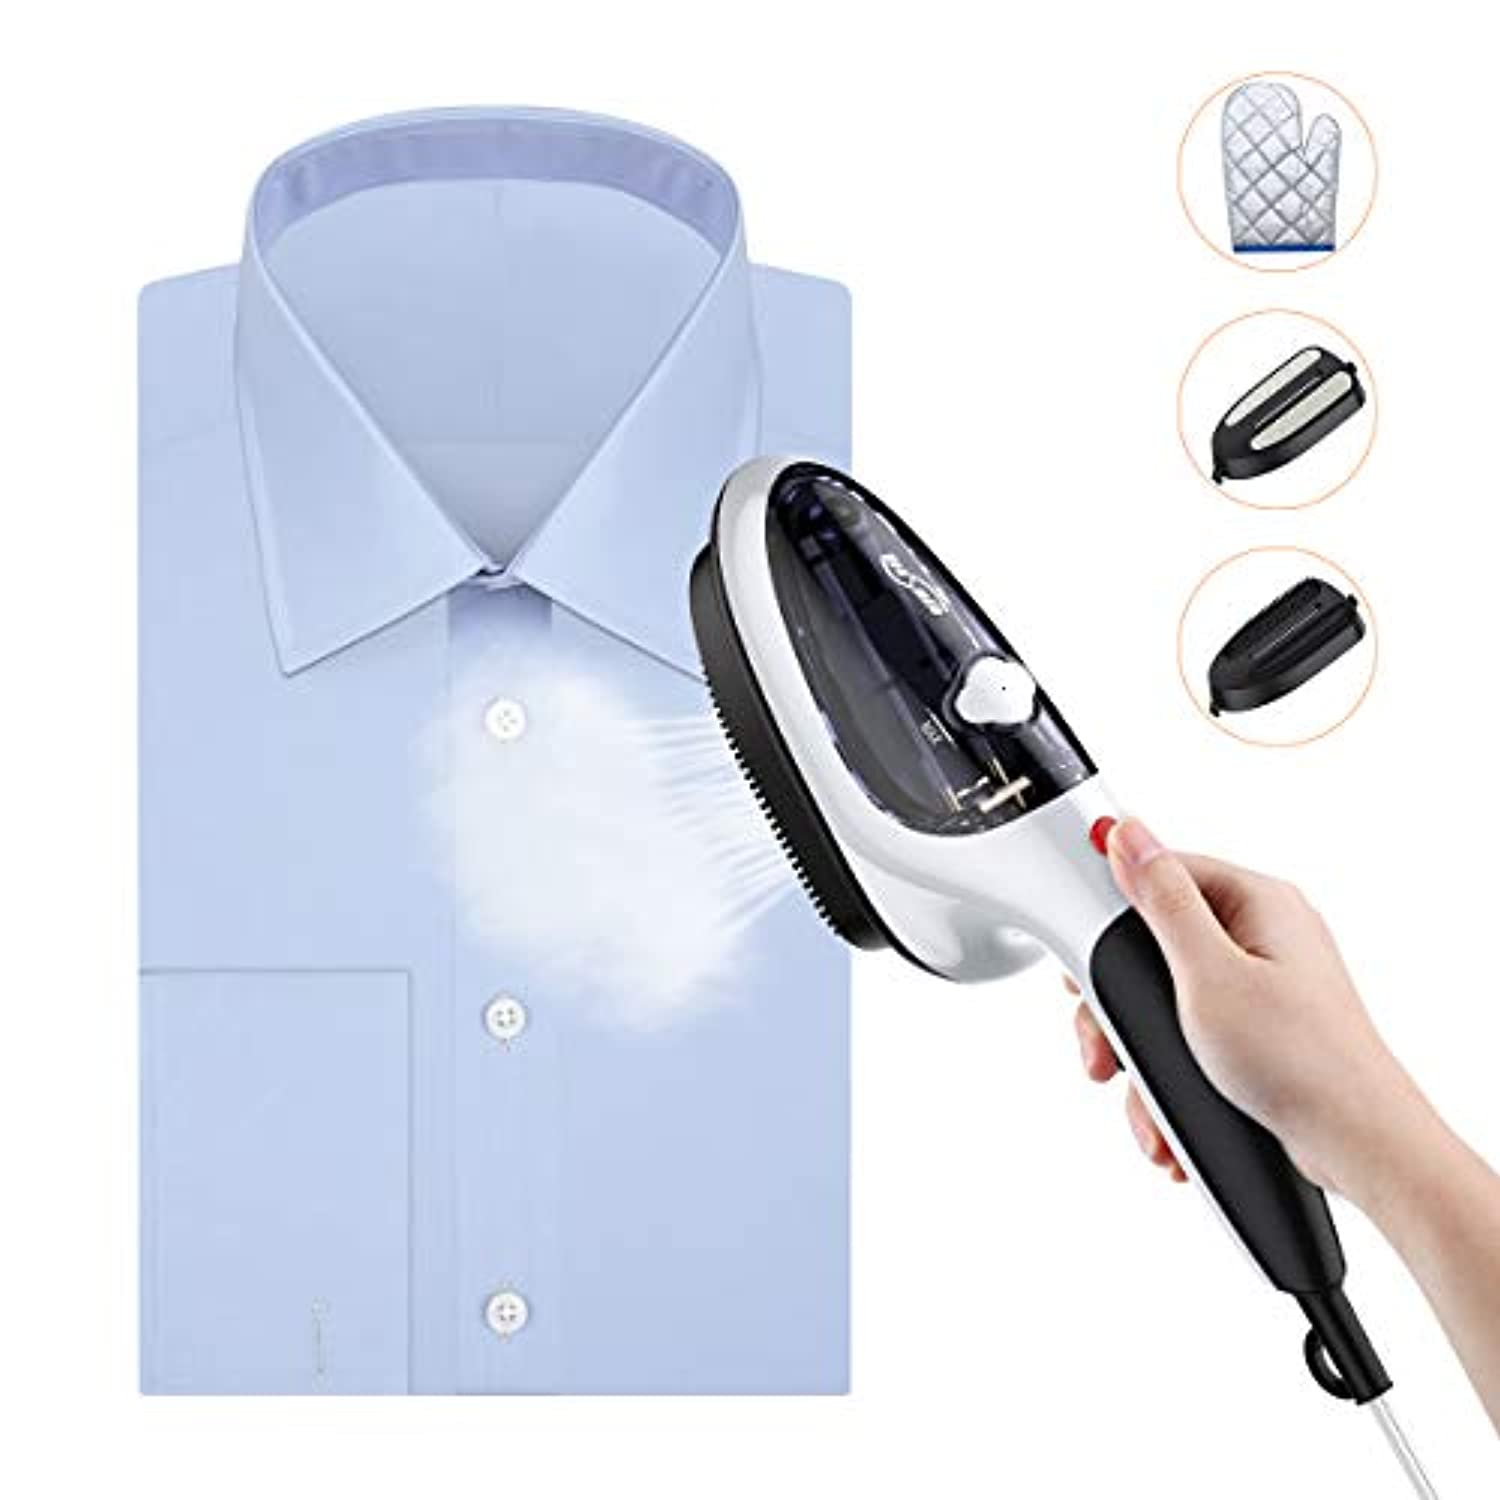 Classier: Buy Housmile Housmile Steamer for Clothes, Portable Garment Steamer and Steam Iron, Handheld Steamer with Two Brushes, 30s Fast Heated up, Home and Travel